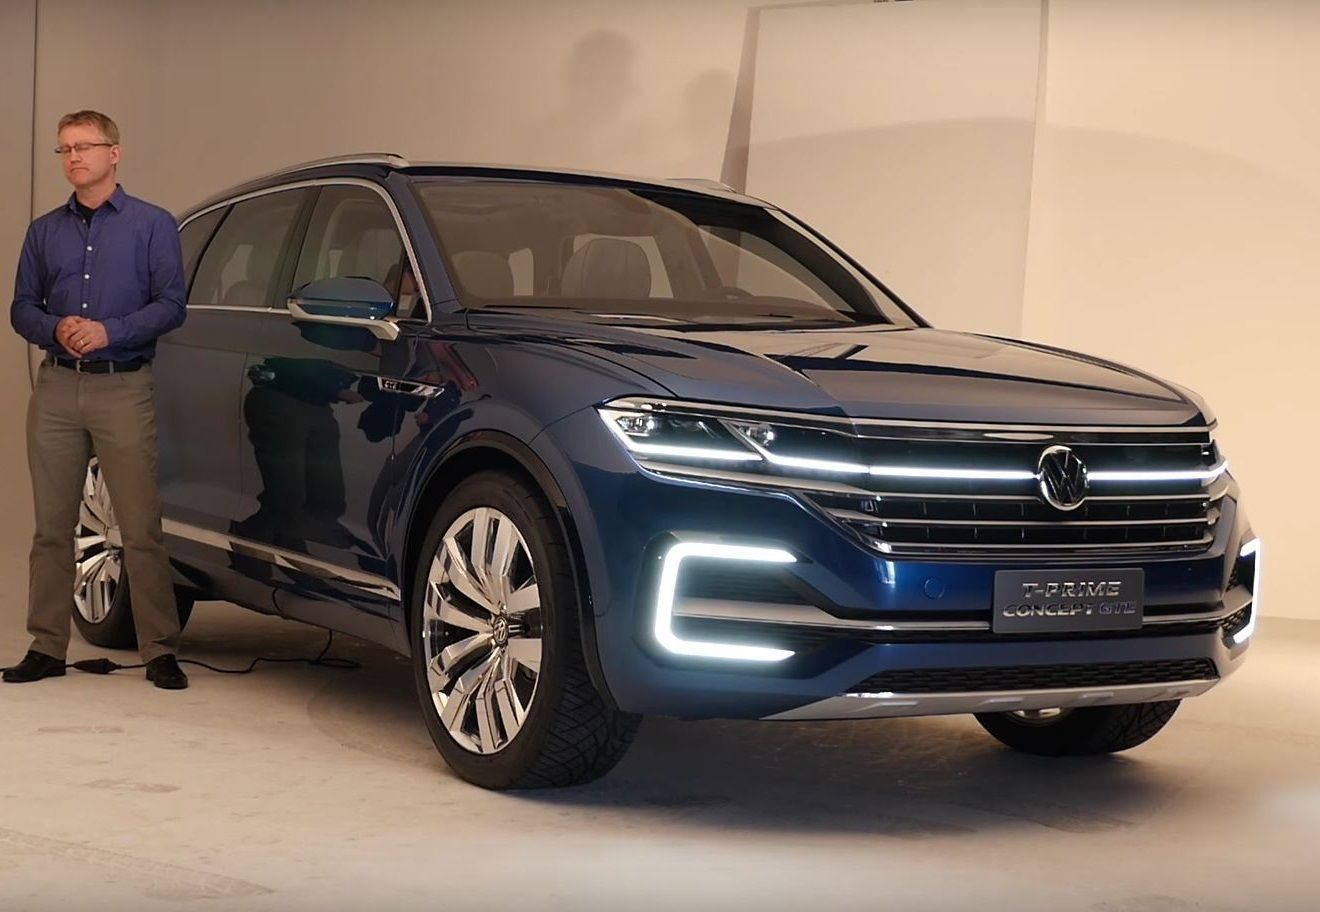 Volkswagen Touareg 2020 Dimensions Price and Review